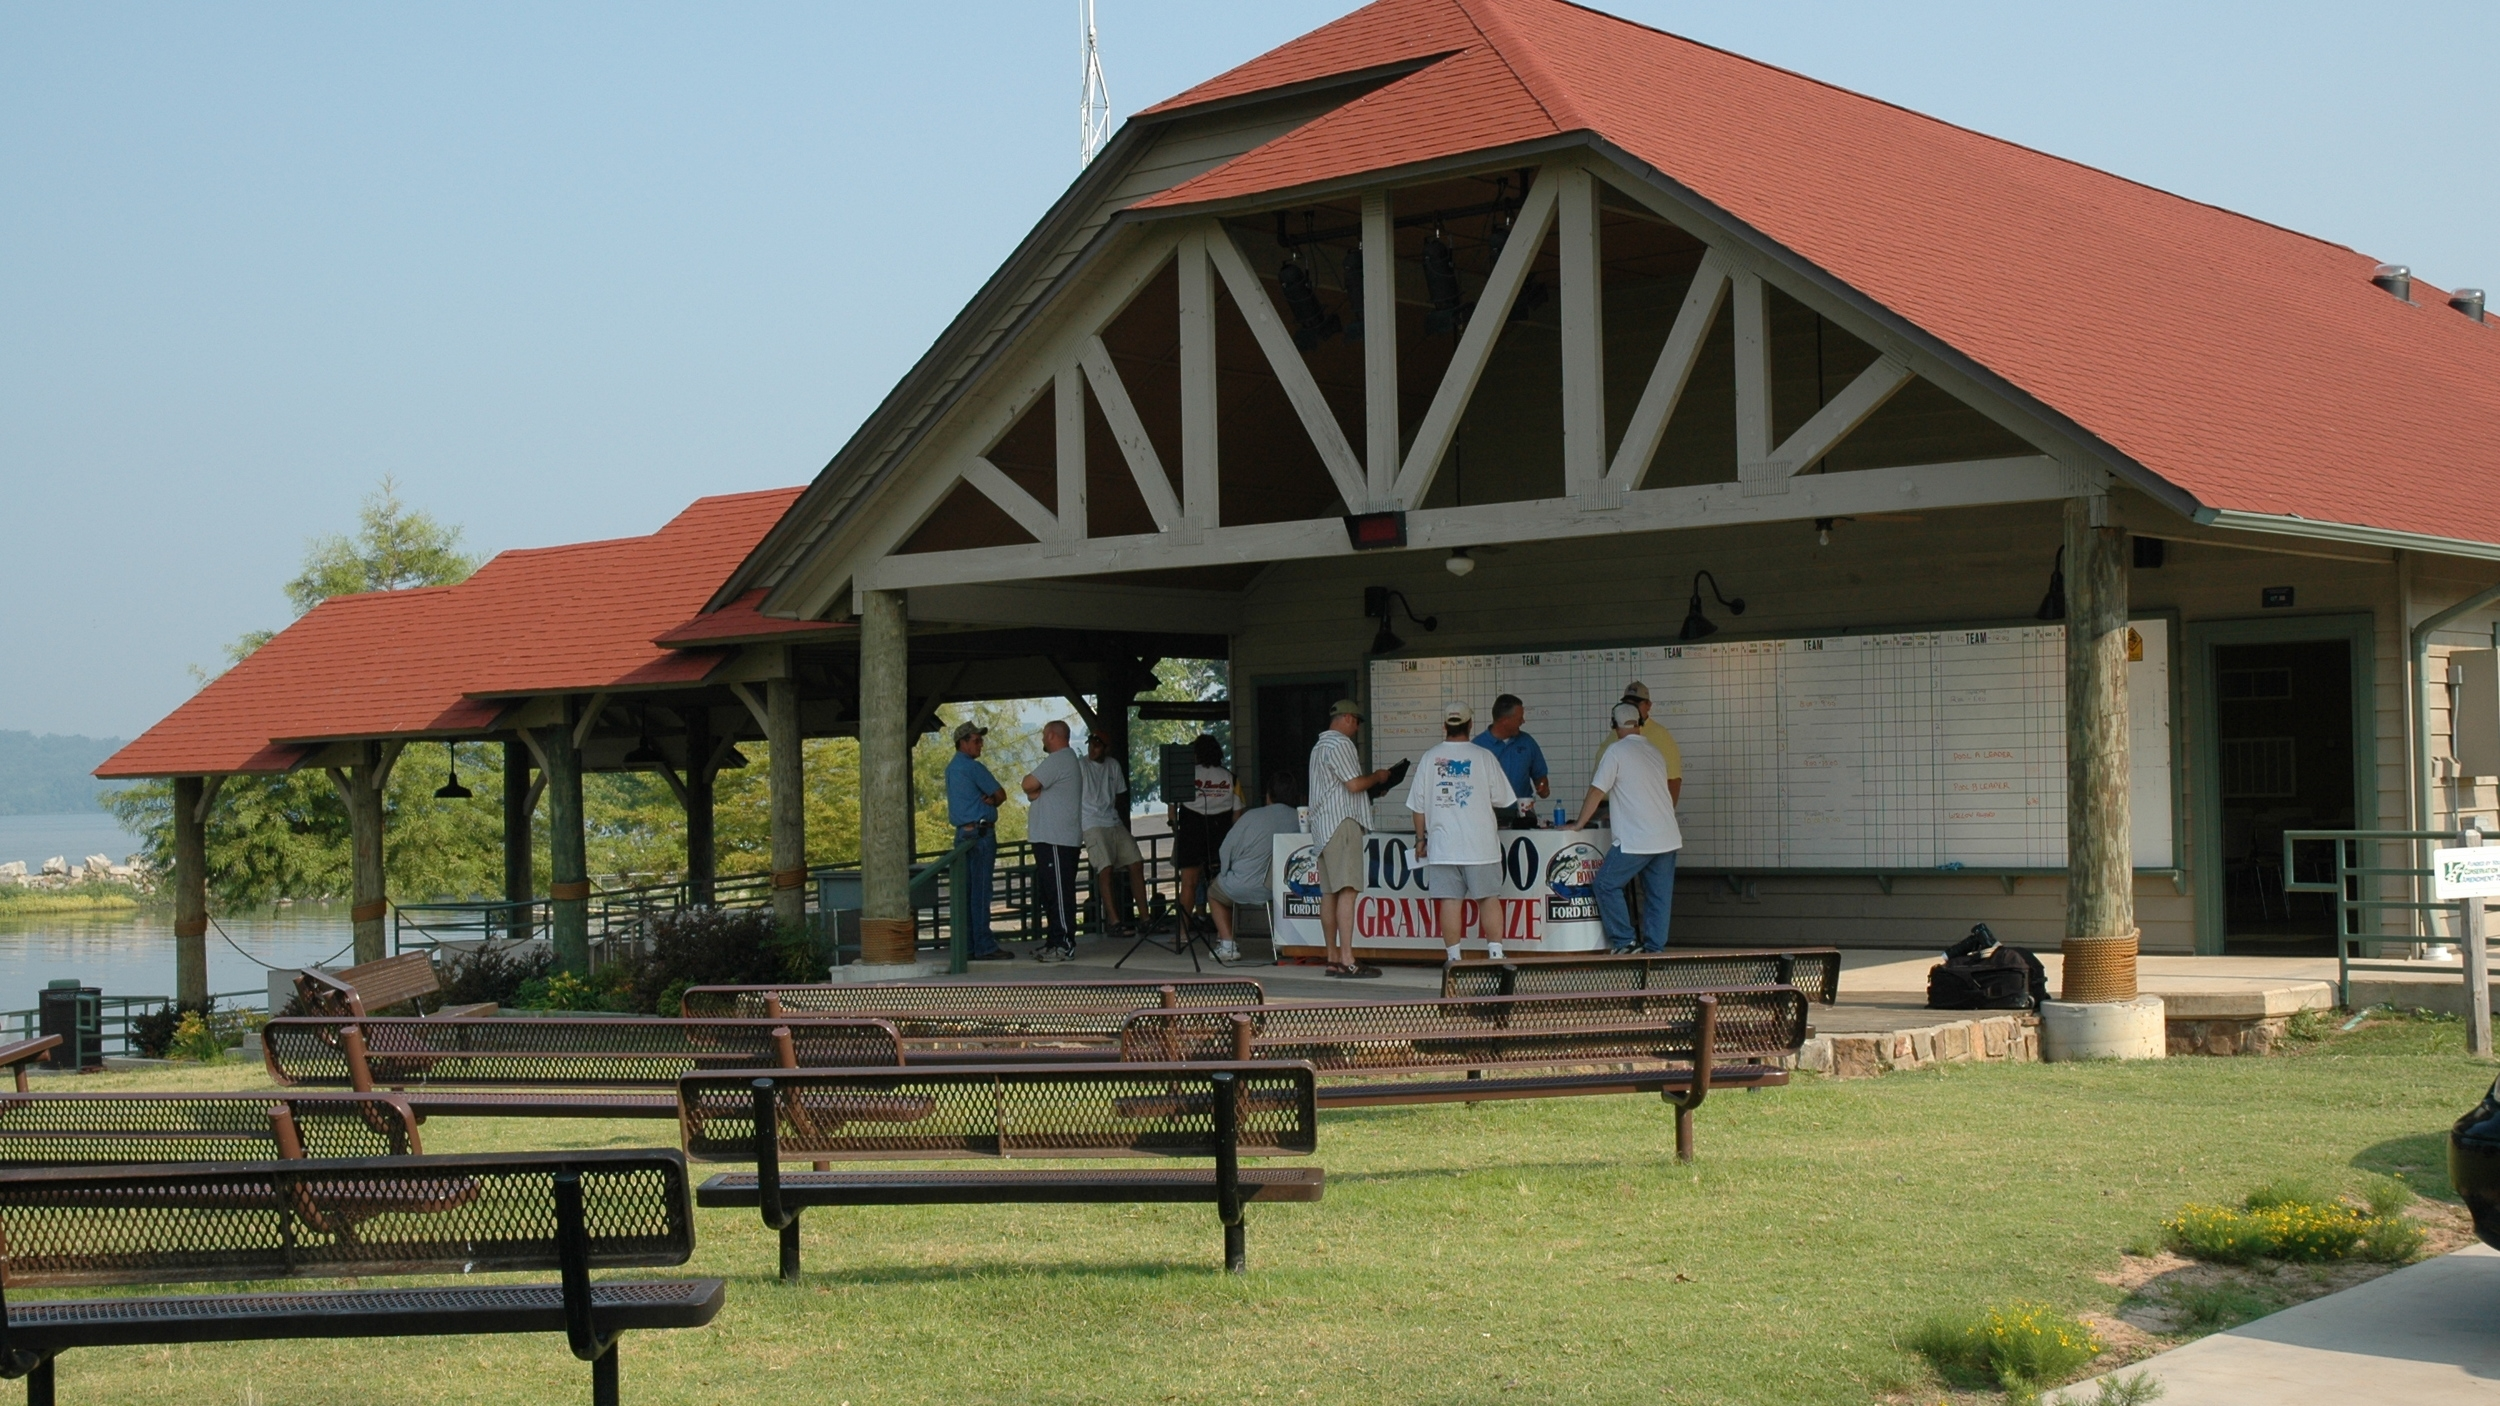 The state-of-the-art tournament venue opened in 2002, and accommodates big events like the Big Bass Bonanza.